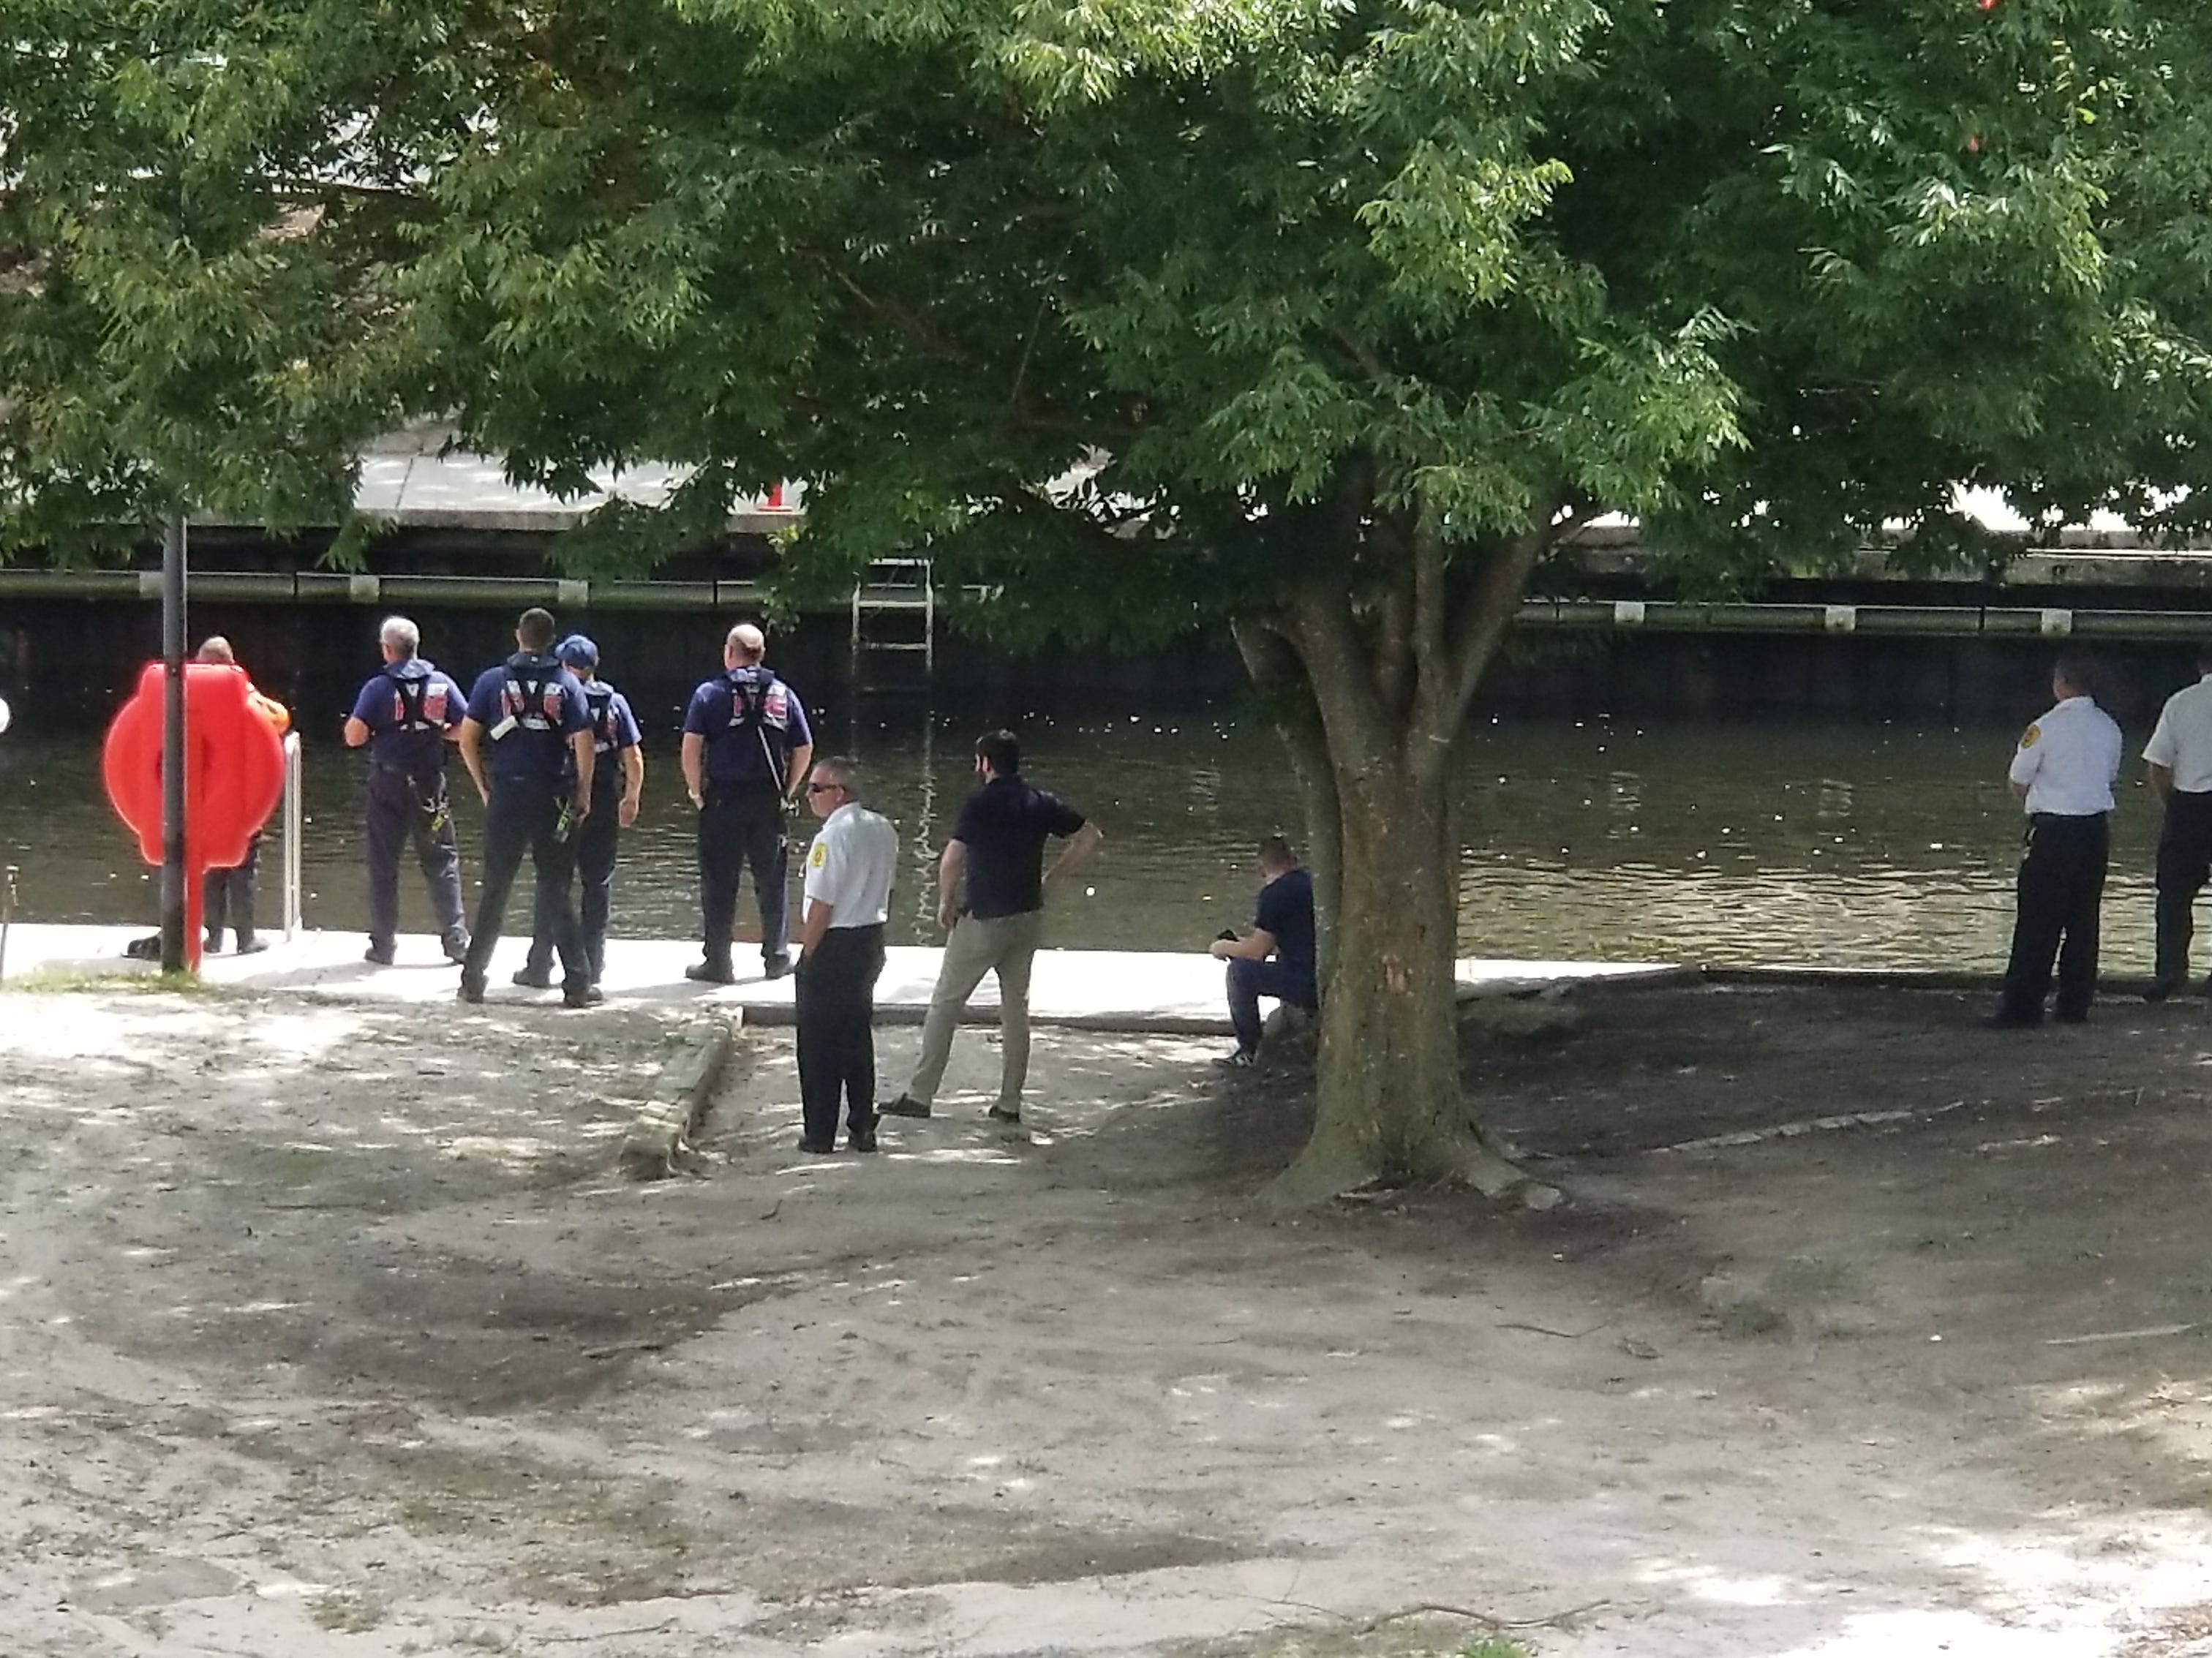 Salisbury police and firefighters watch divers search for a body in the Wicomico River at the South Division Street bridge in Salisbury.